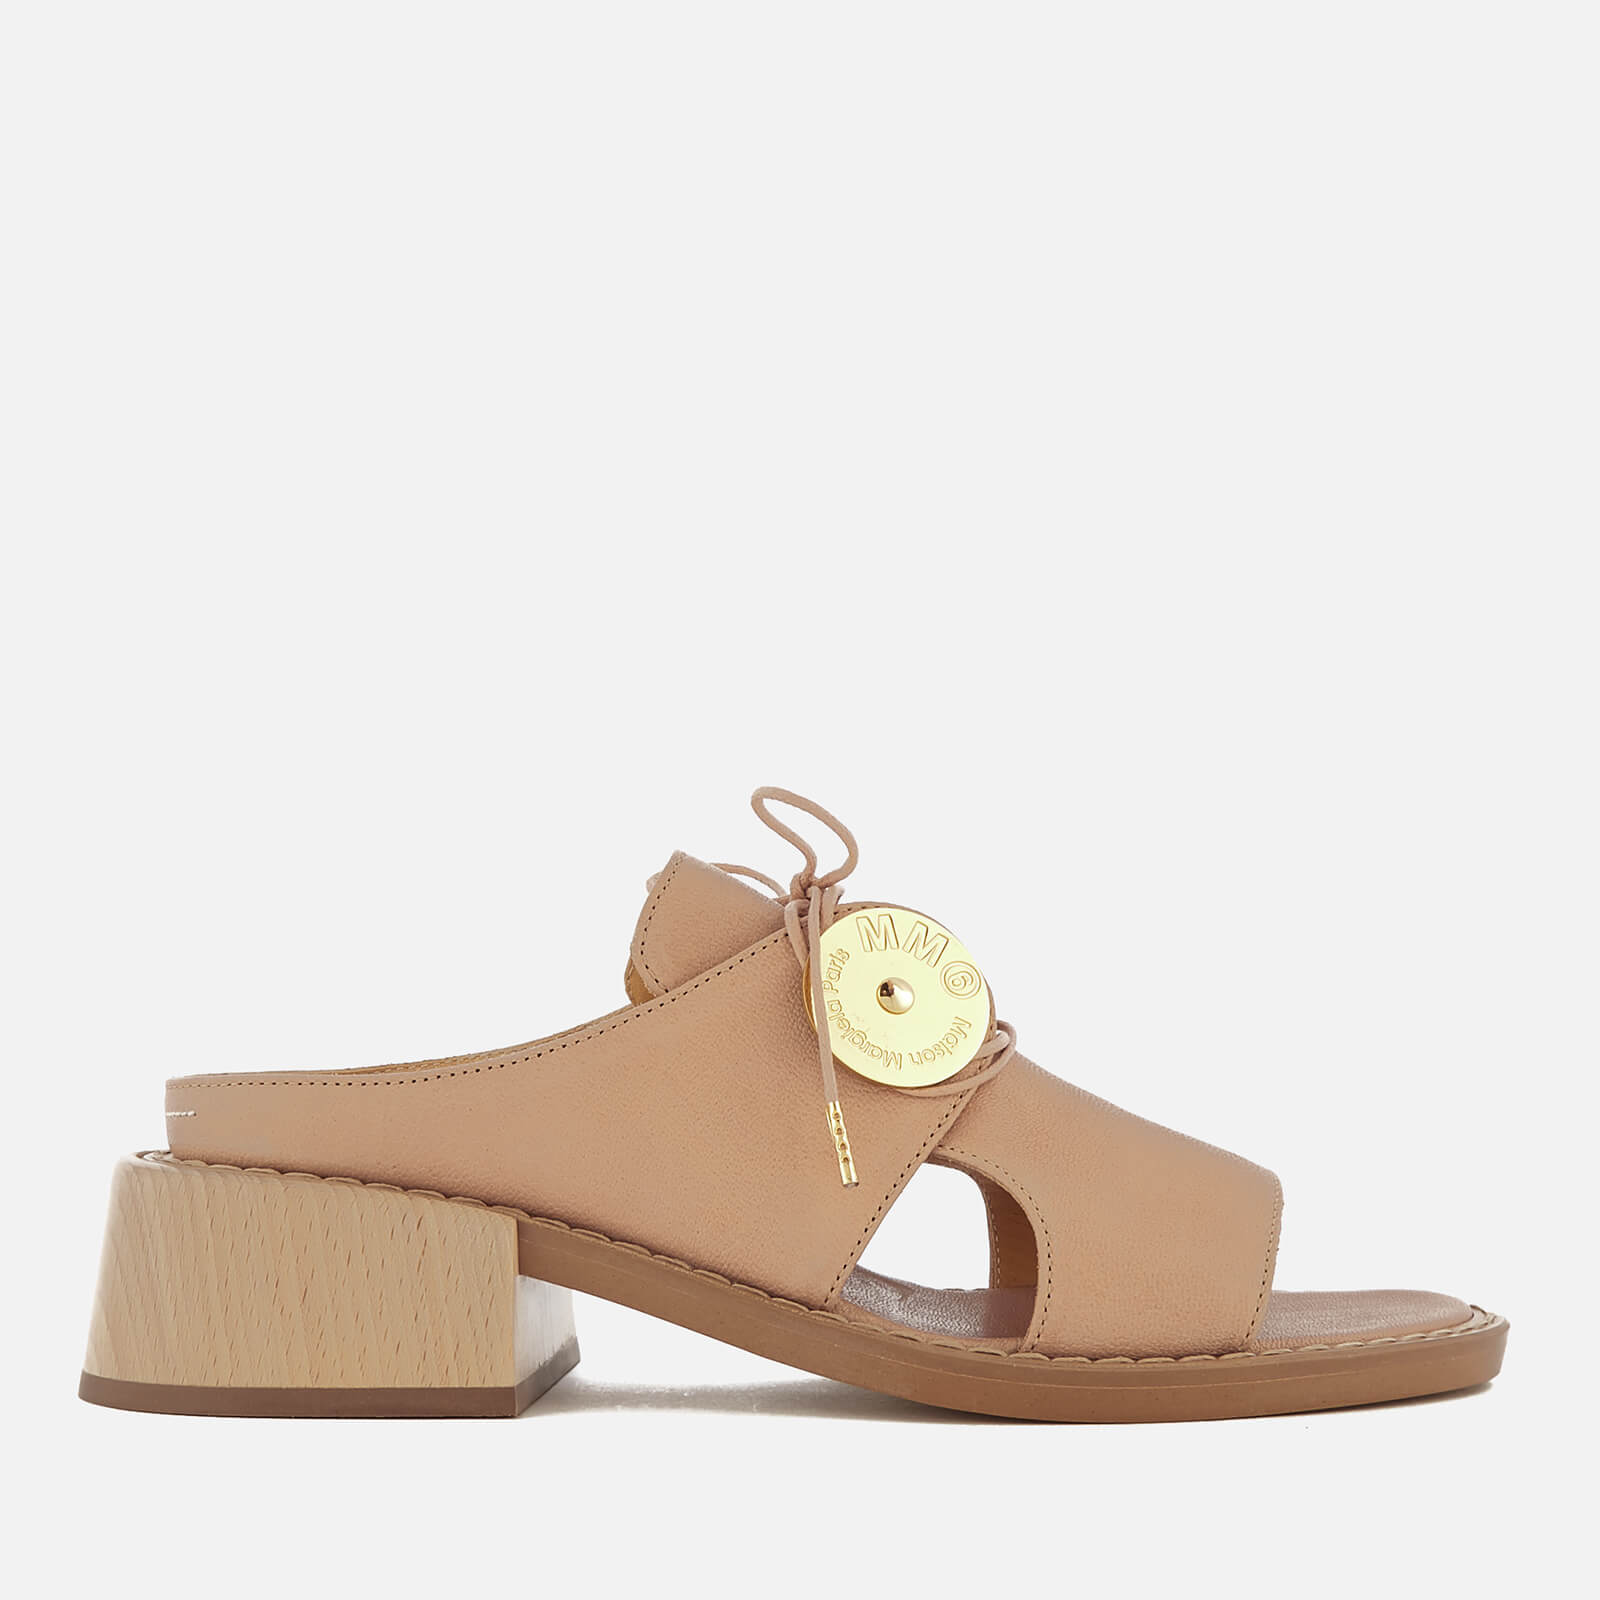 a9e1e10106317 MM6 Maison Margiela Women's Open Toe Slip On Sandal with Wooden Block Heels  - Sand - Free UK Delivery over £50